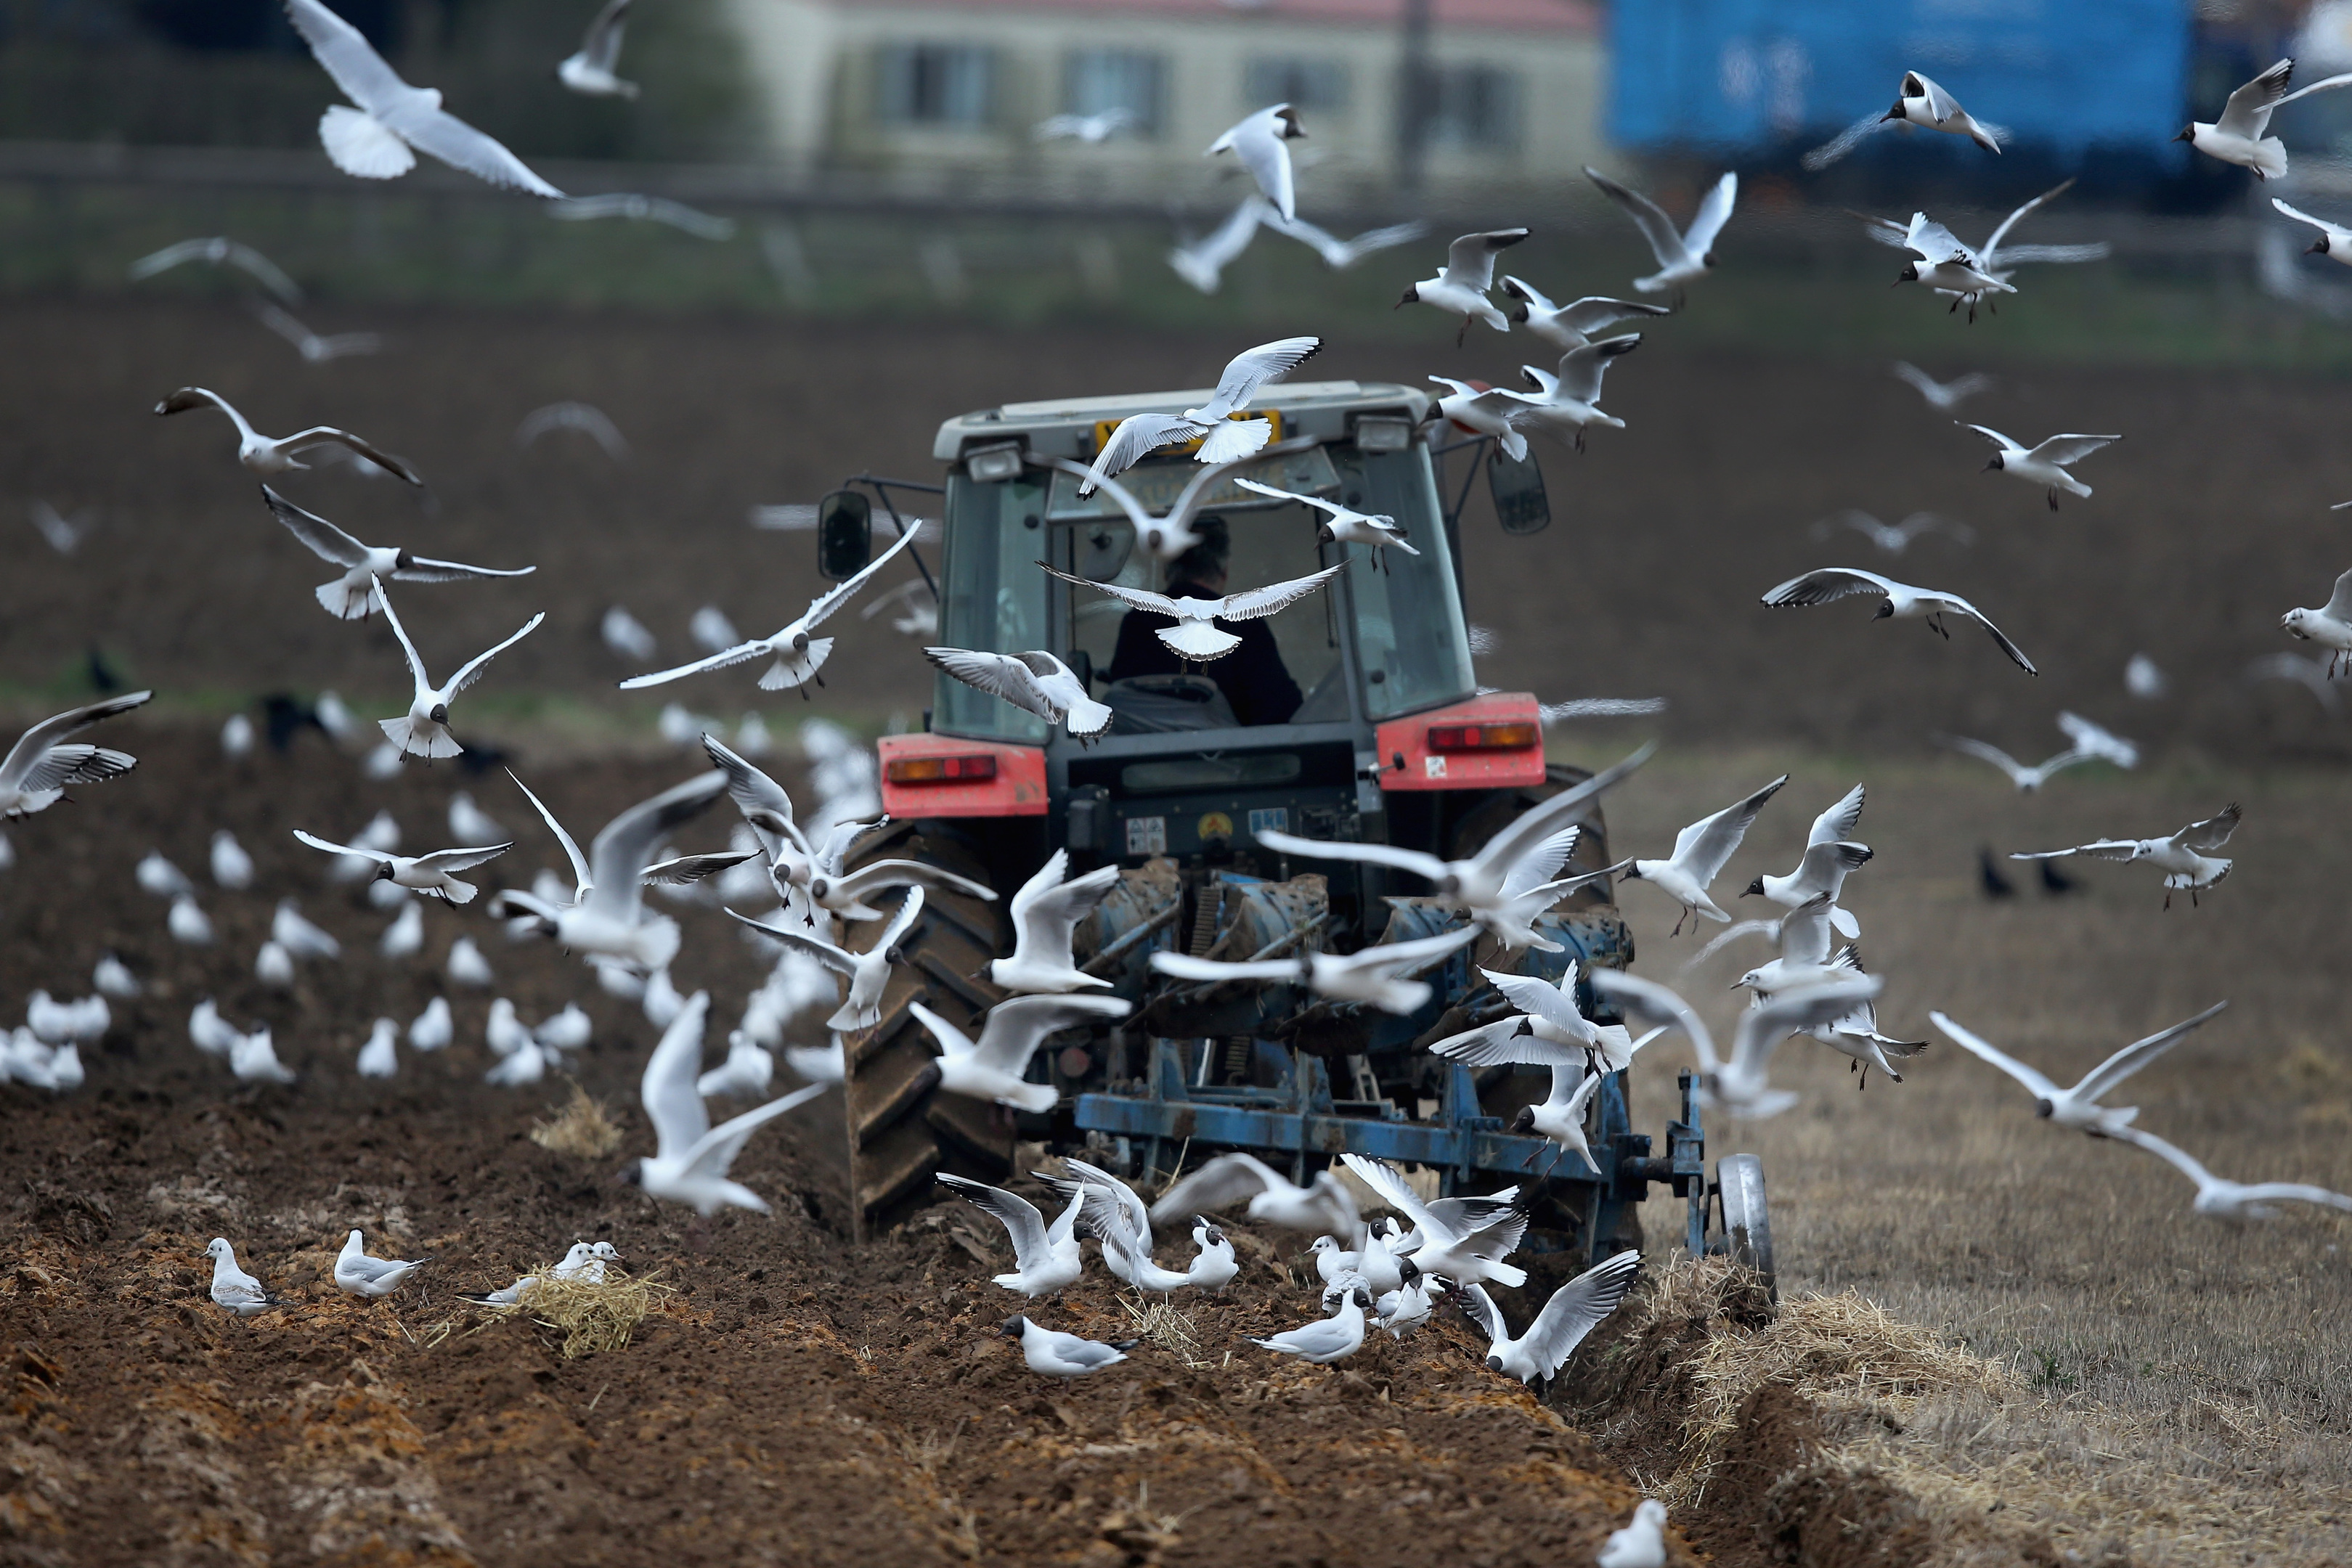 GOOLE, UNITED KINGDOM - MARCH 25:  Seagulls scavenge for food as a farmer ploughs his field in the East Yorkshire countryside on March 25, 2014 in Goole, United Kingdom.  (Photo by Christopher Furlong/Getty Images)